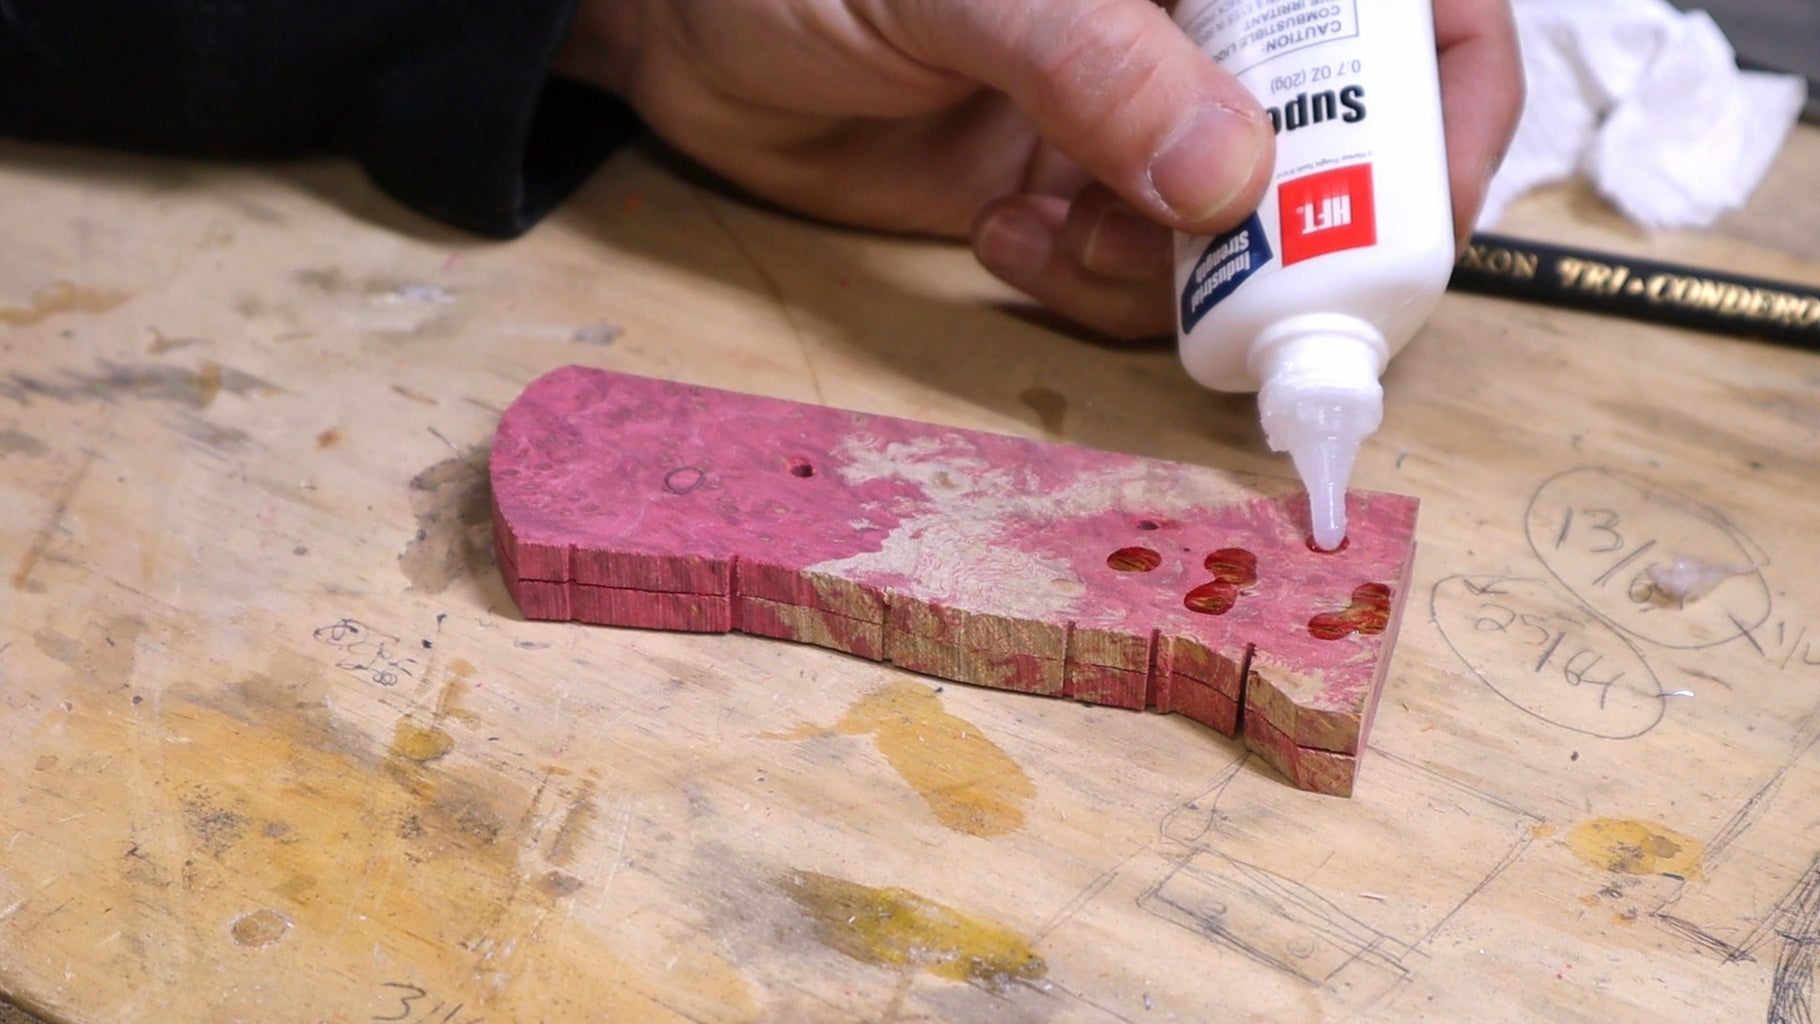 Gluing Any Imperfection in the Handle